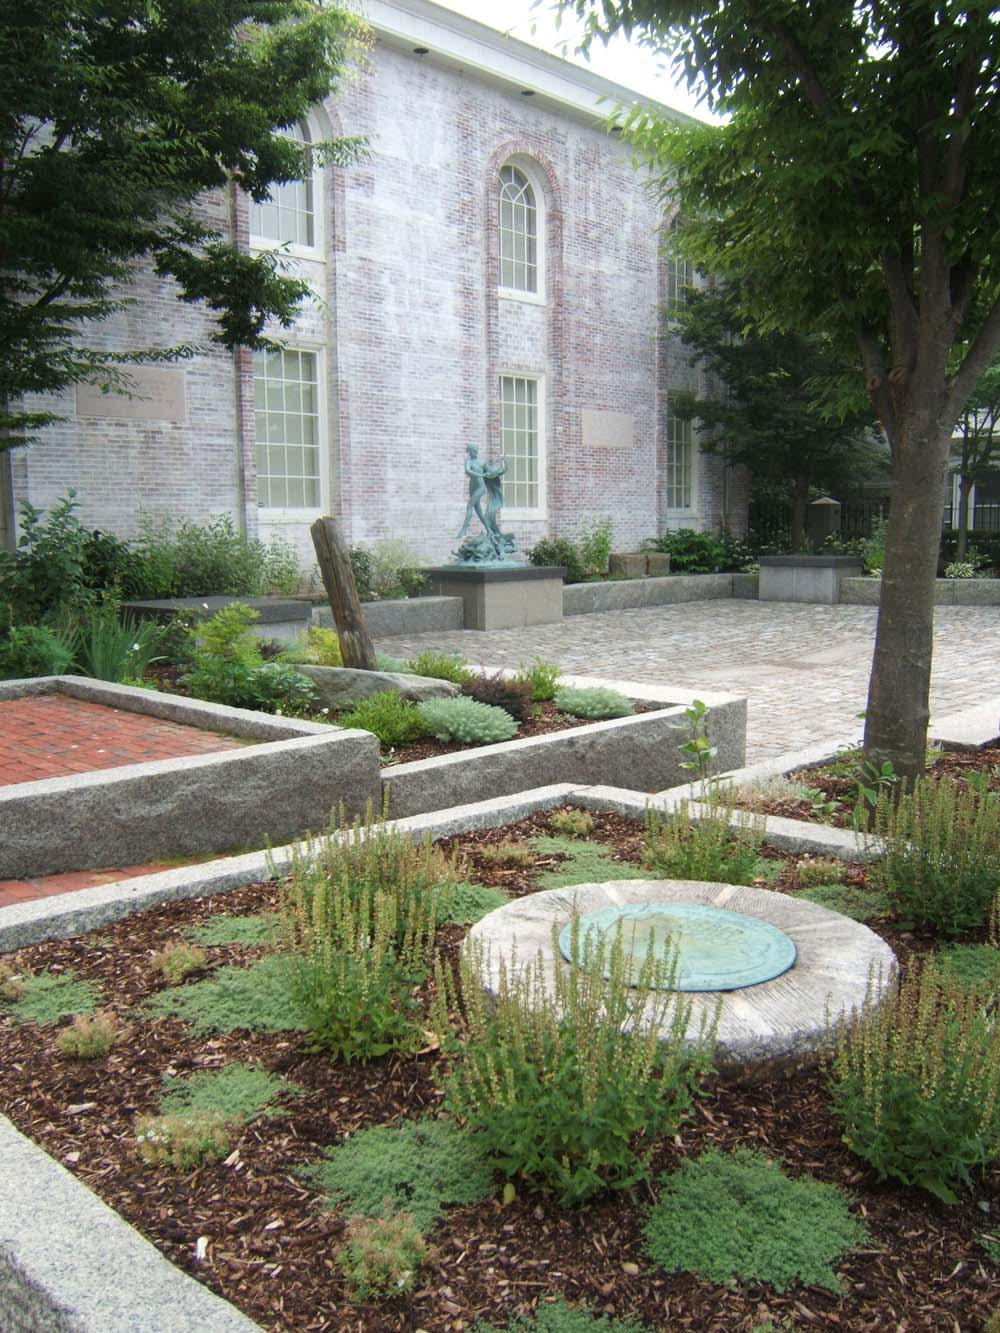 Entryway and Sculpture Garden at the Cape Ann Museum